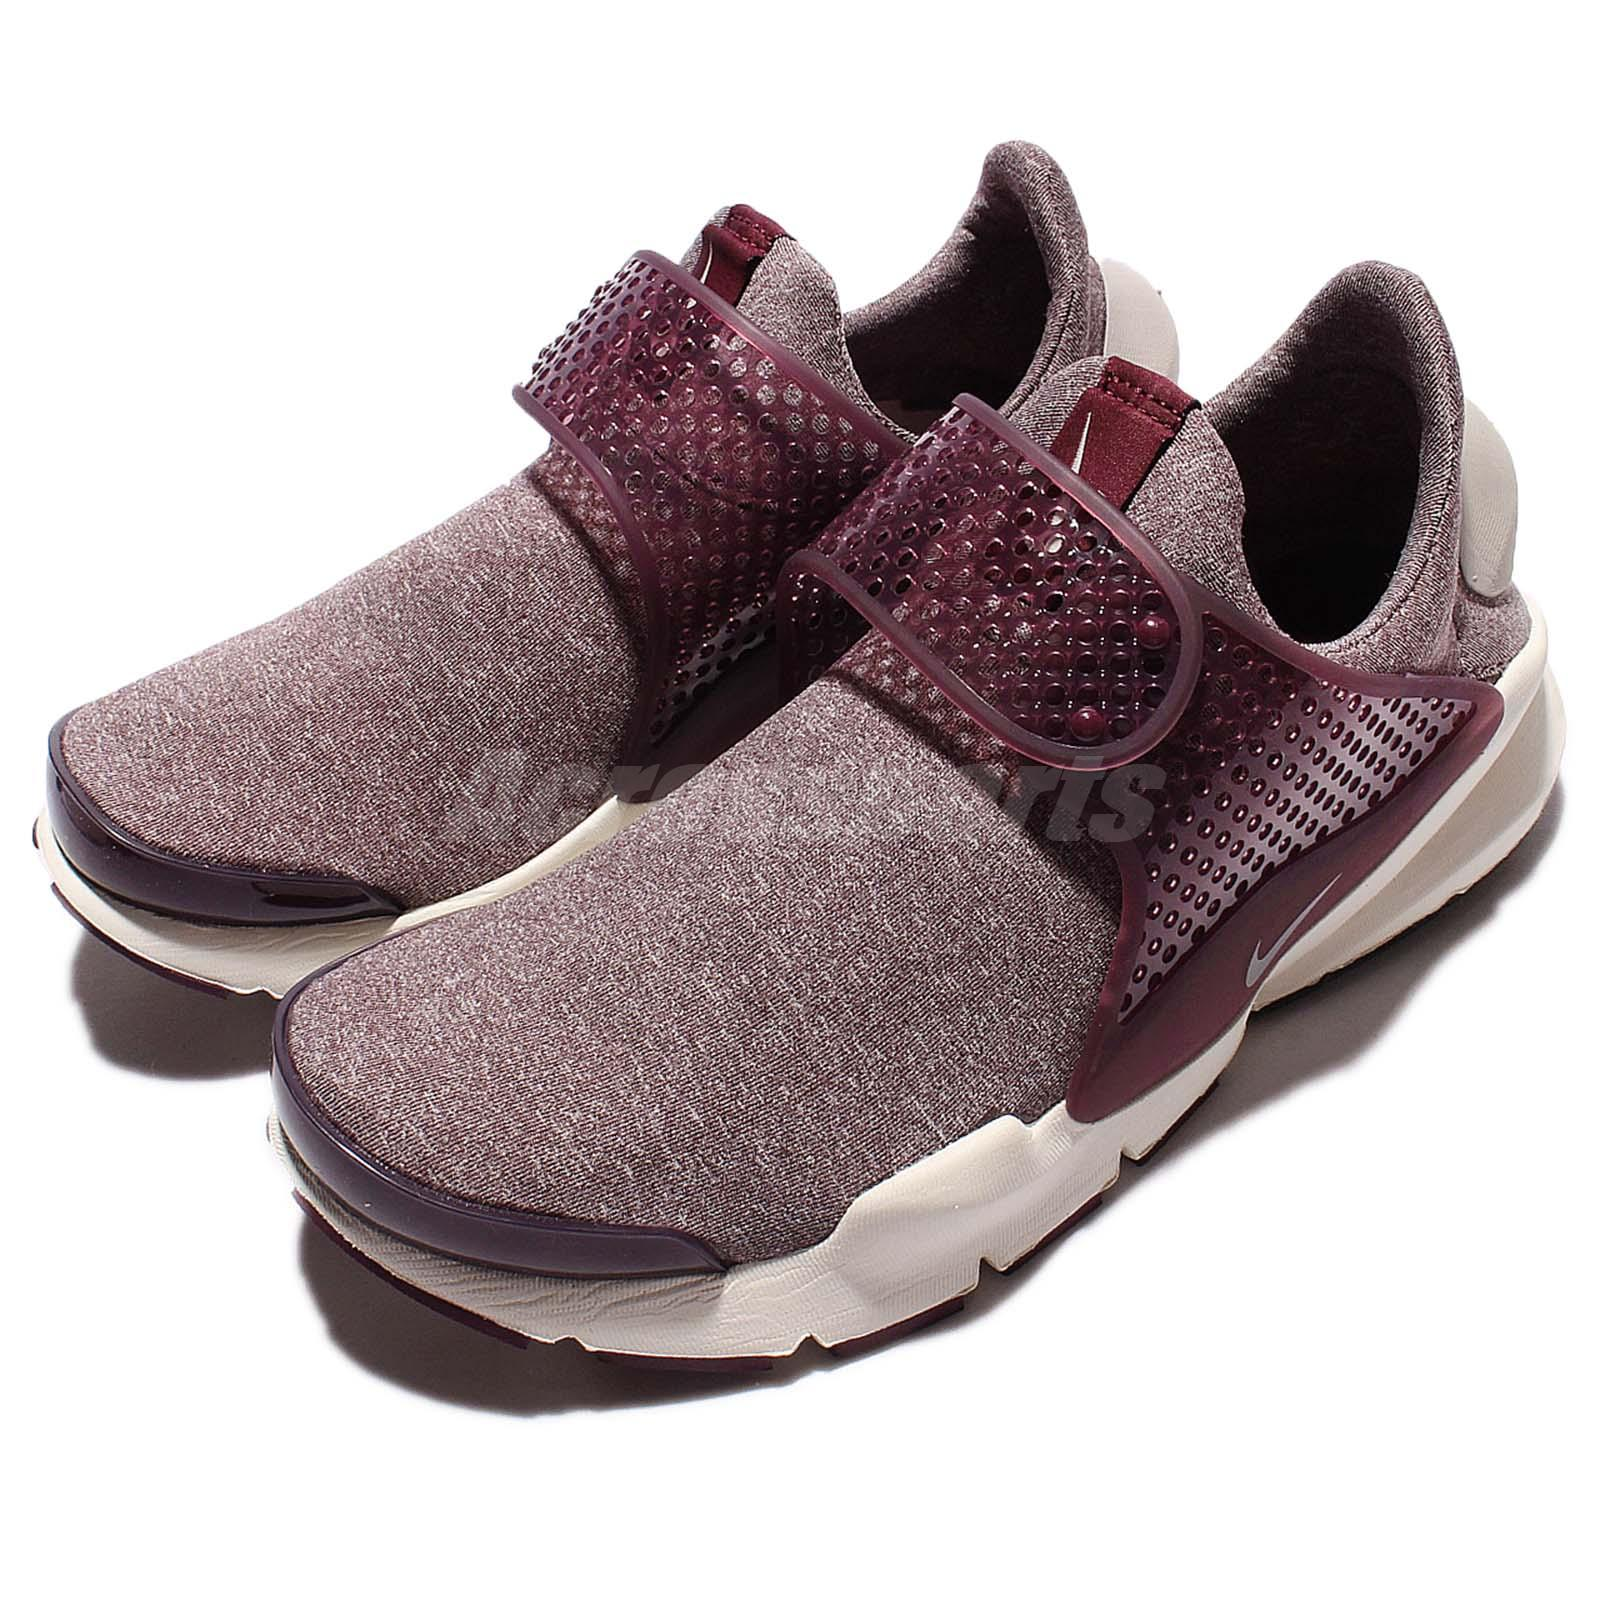 Excellent Nike Shoes Nike Shoes Women Maroon